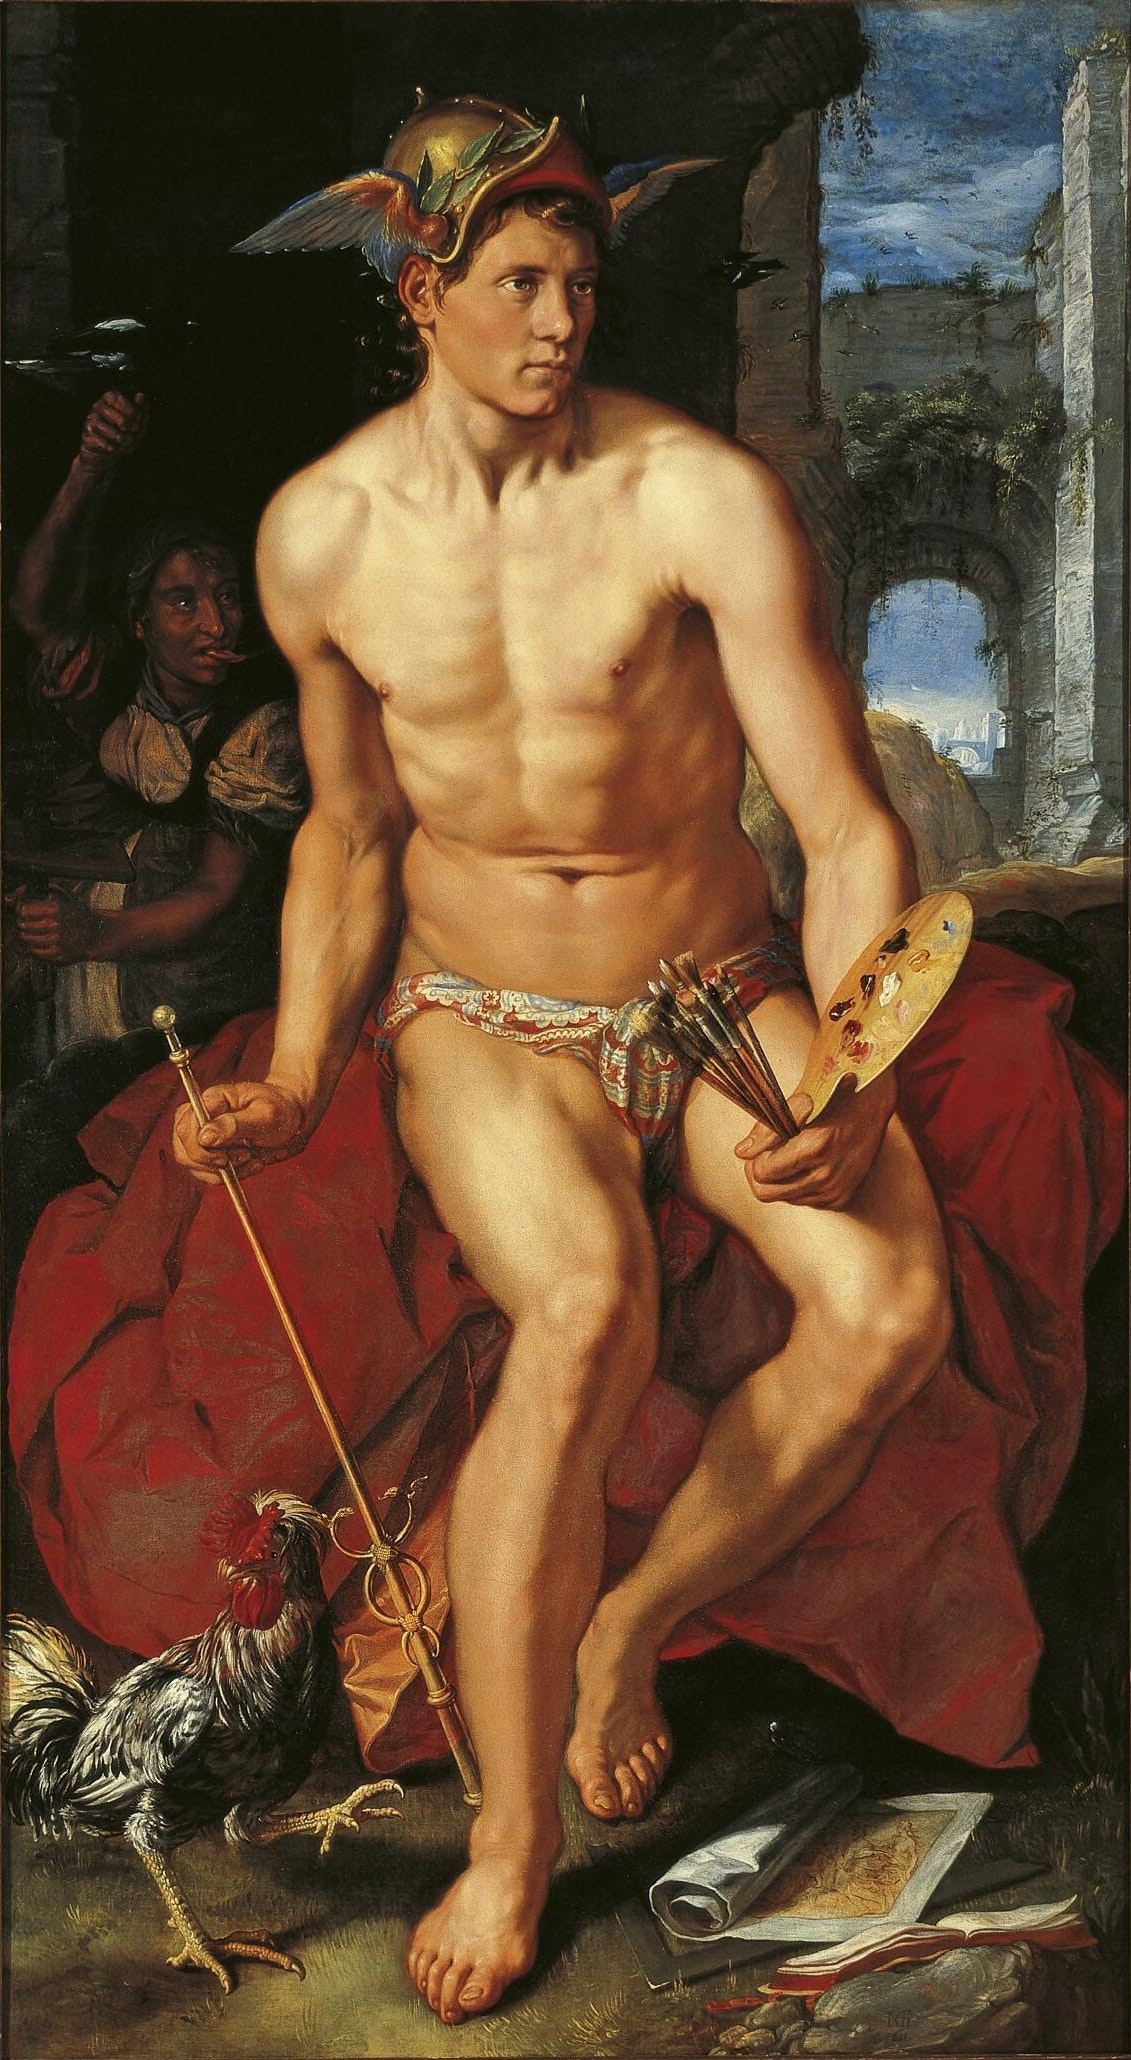 Hendrik Goltzius, Mercury, oil on canvas (1611)